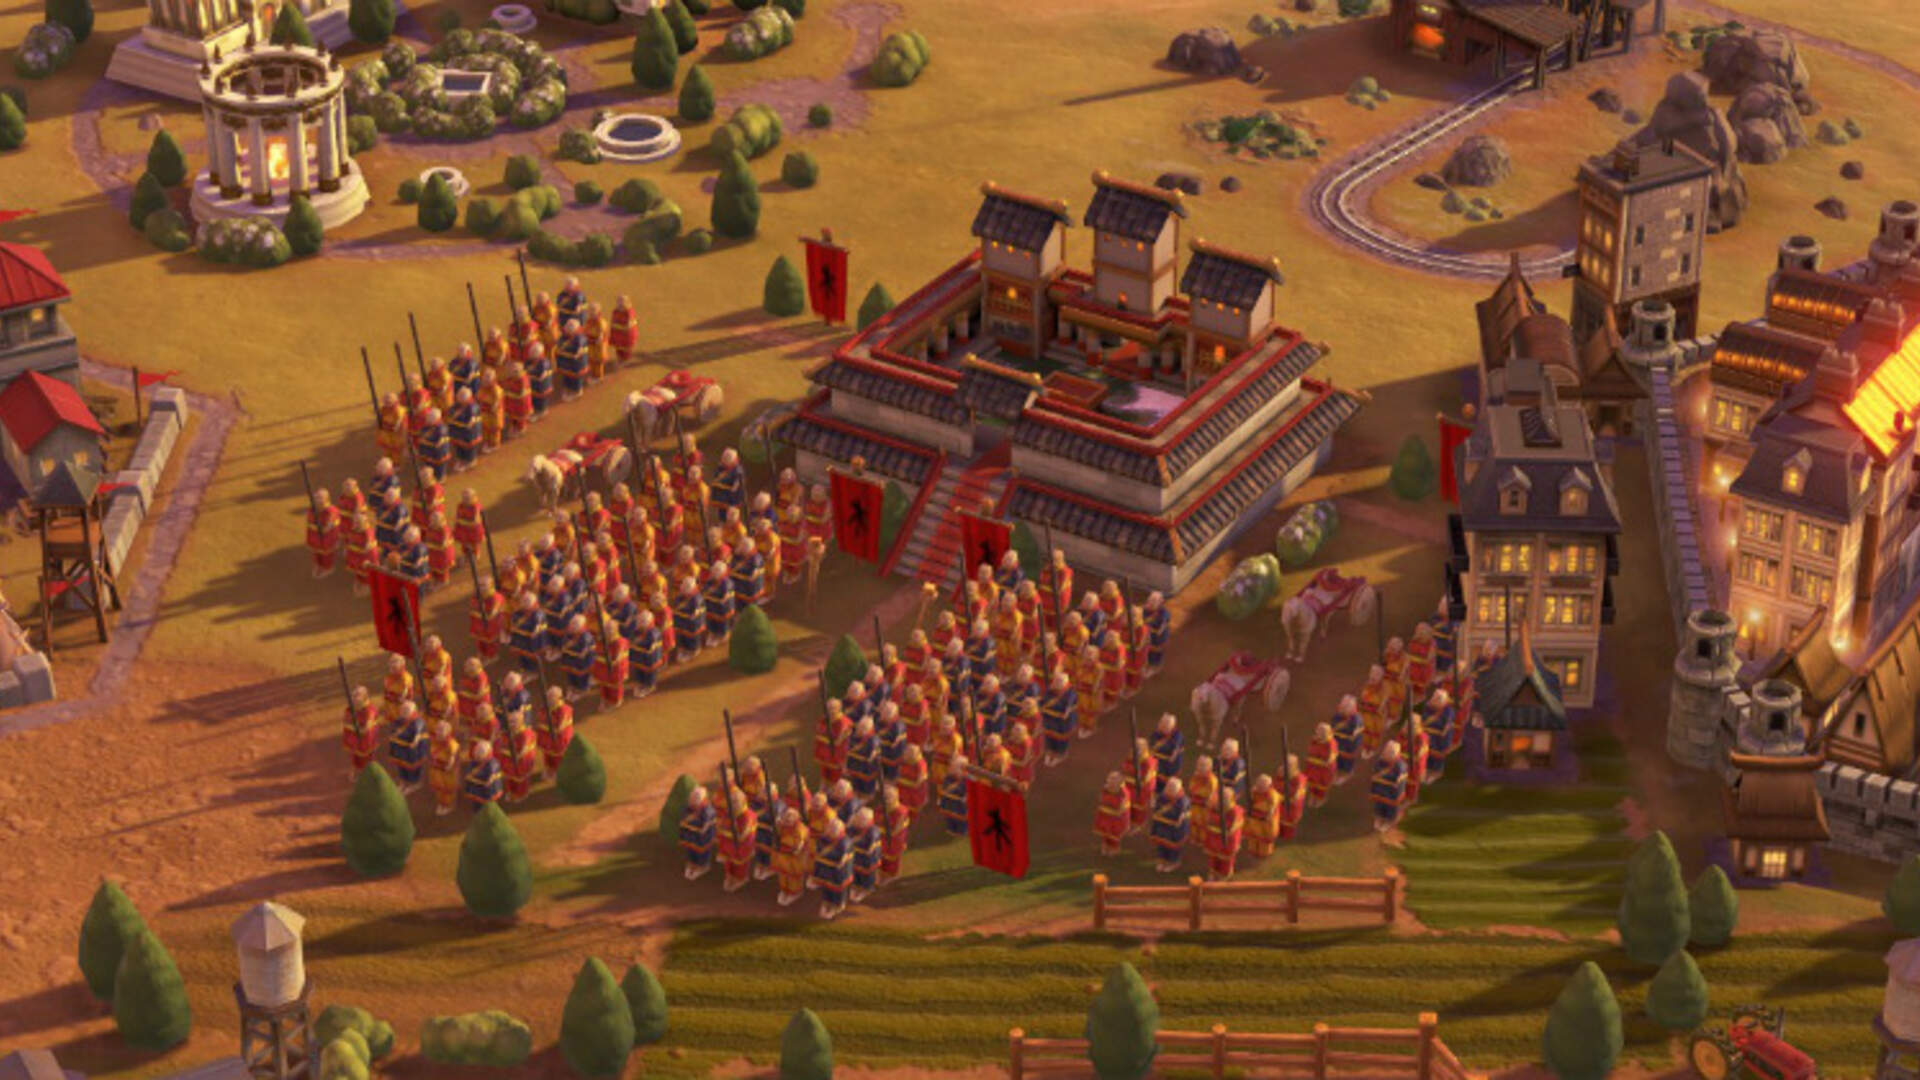 Civilization VI Preview: What We Think After a Week With the Game